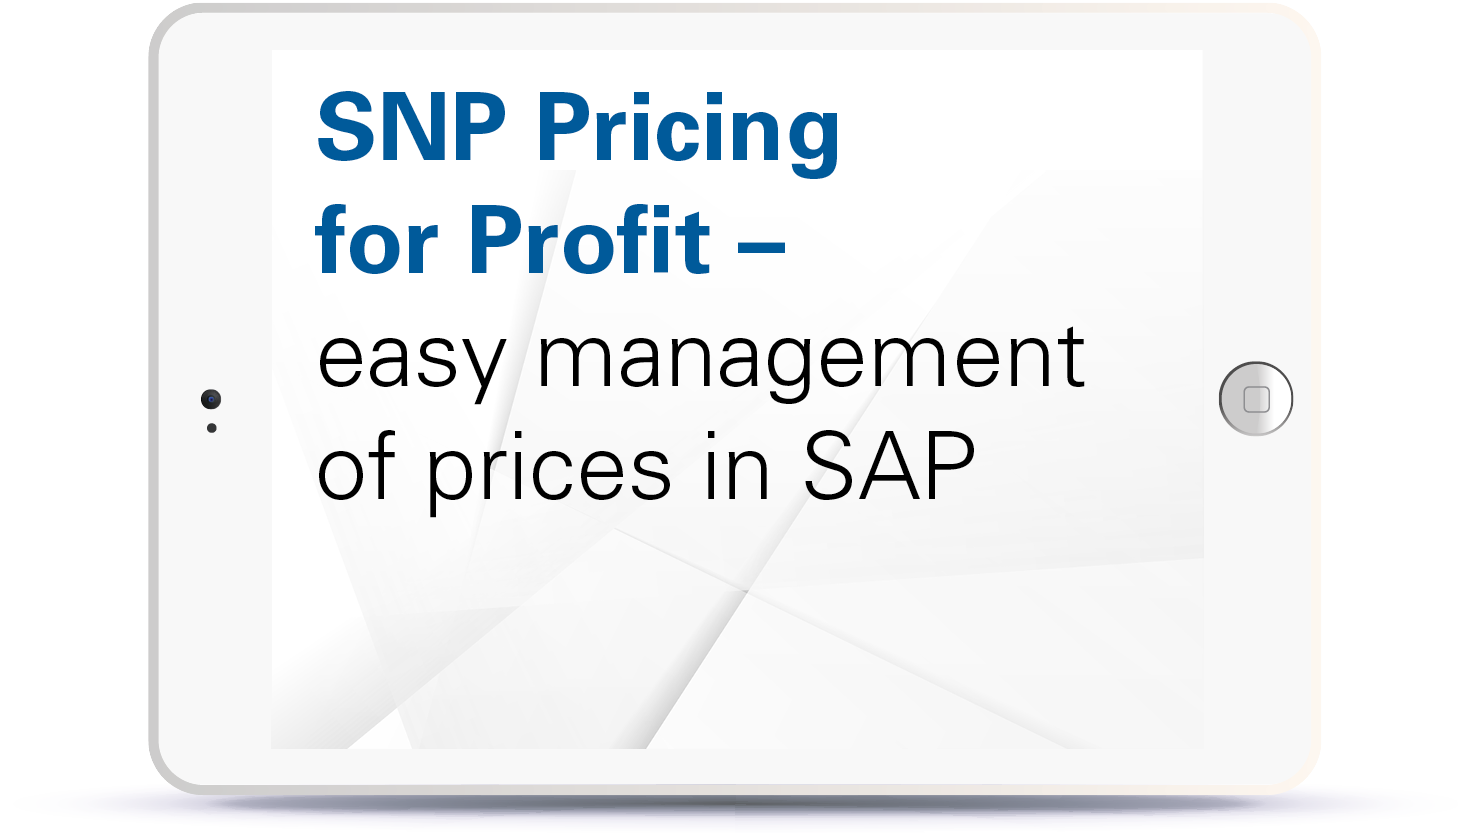 Webinar SNP Pricing for Profit - easy management of prices in SAP Book